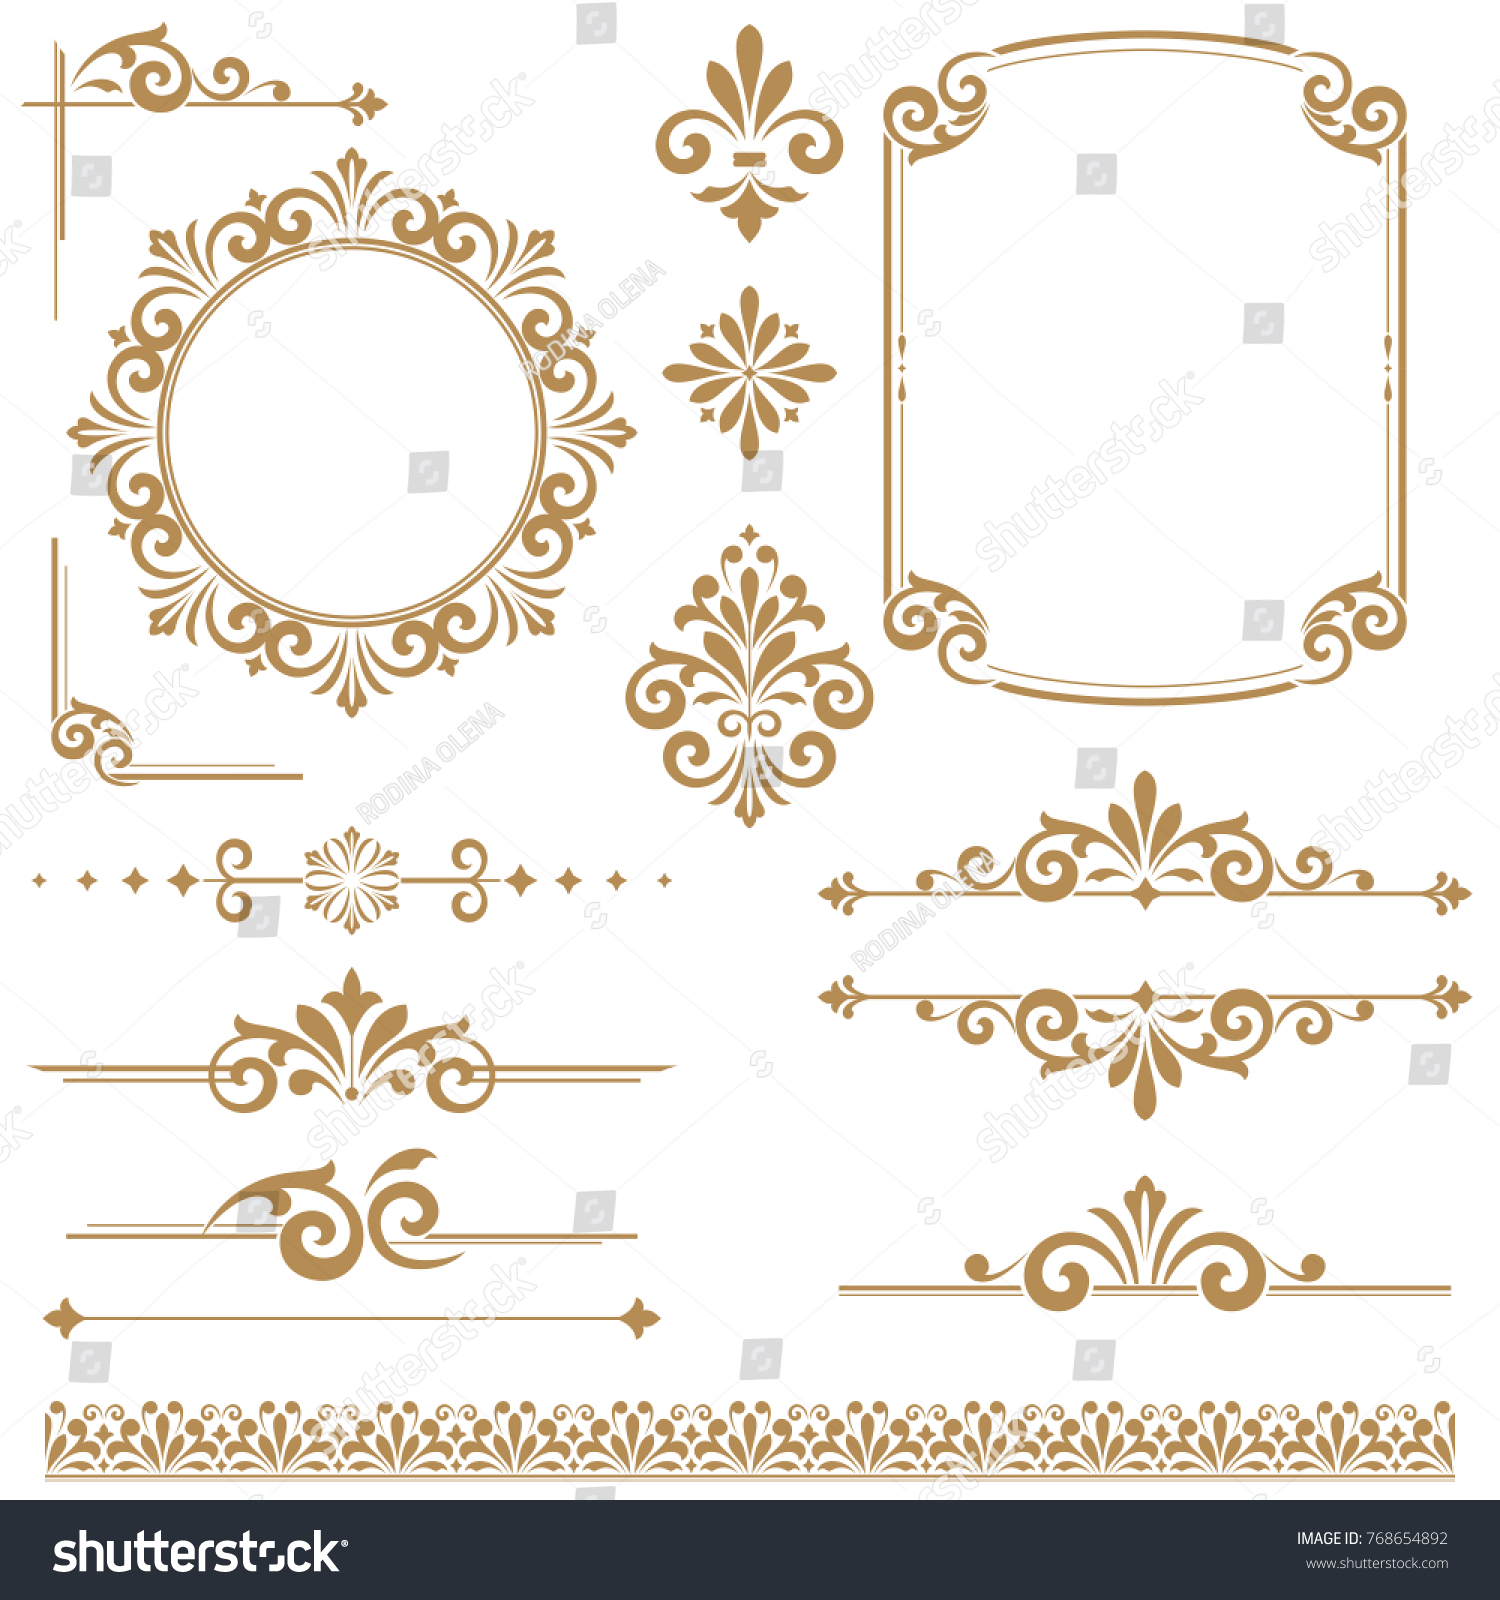 Vintage vector Set. Floral elements for design monograms, invitations, frames, menus and labels. Graphic design of the website, cafes, boutiques, hotels, wedding invitations.